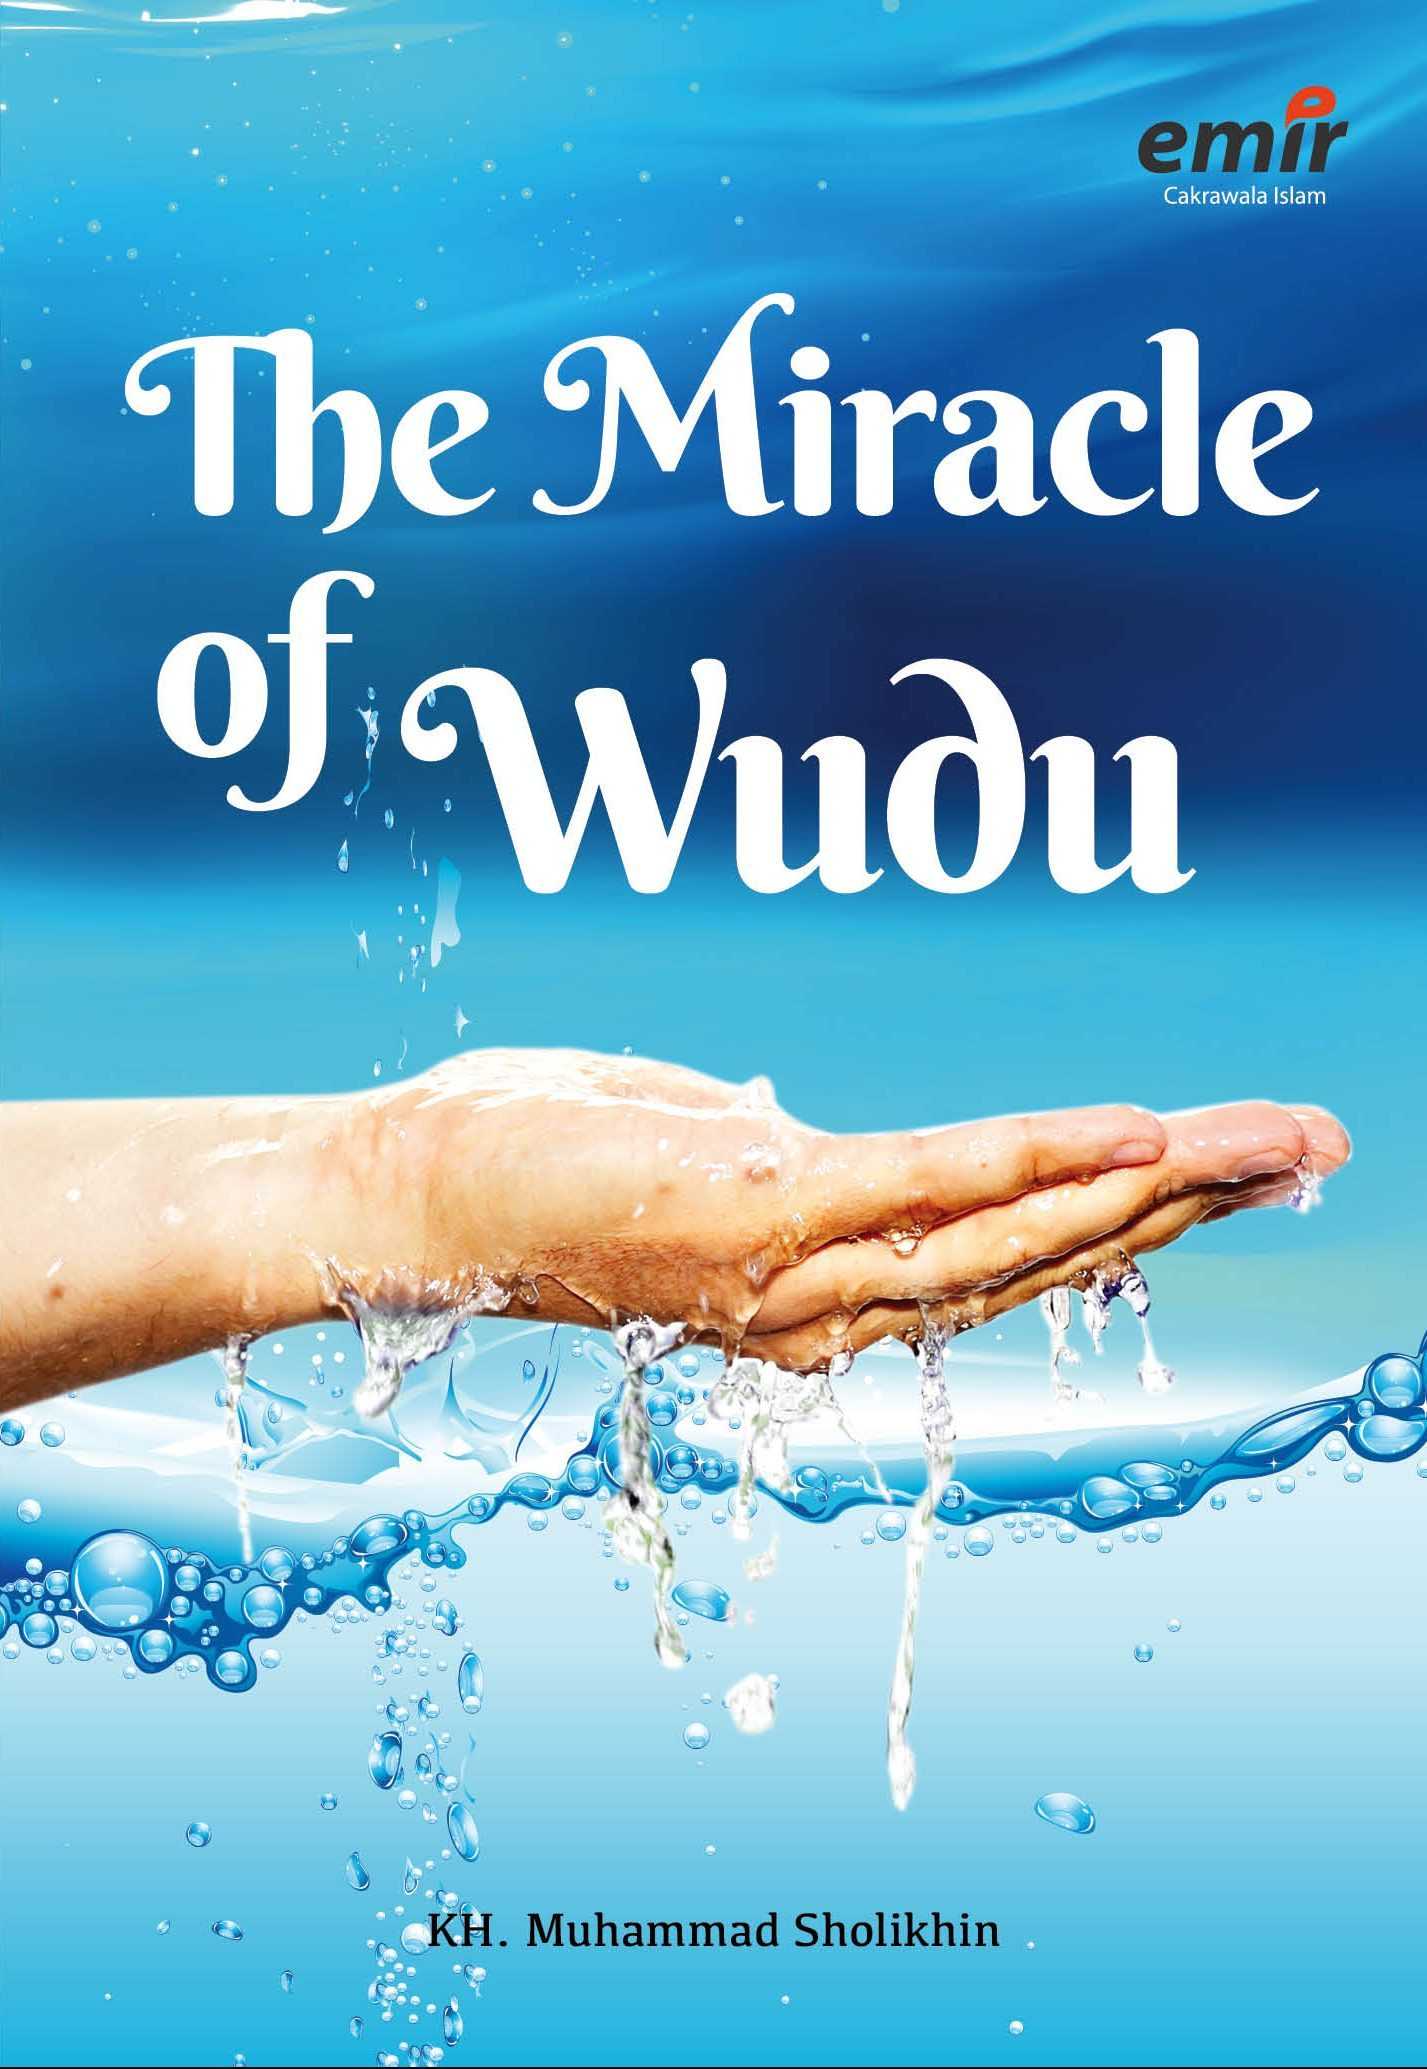 THE MIRACLE OF WUDU